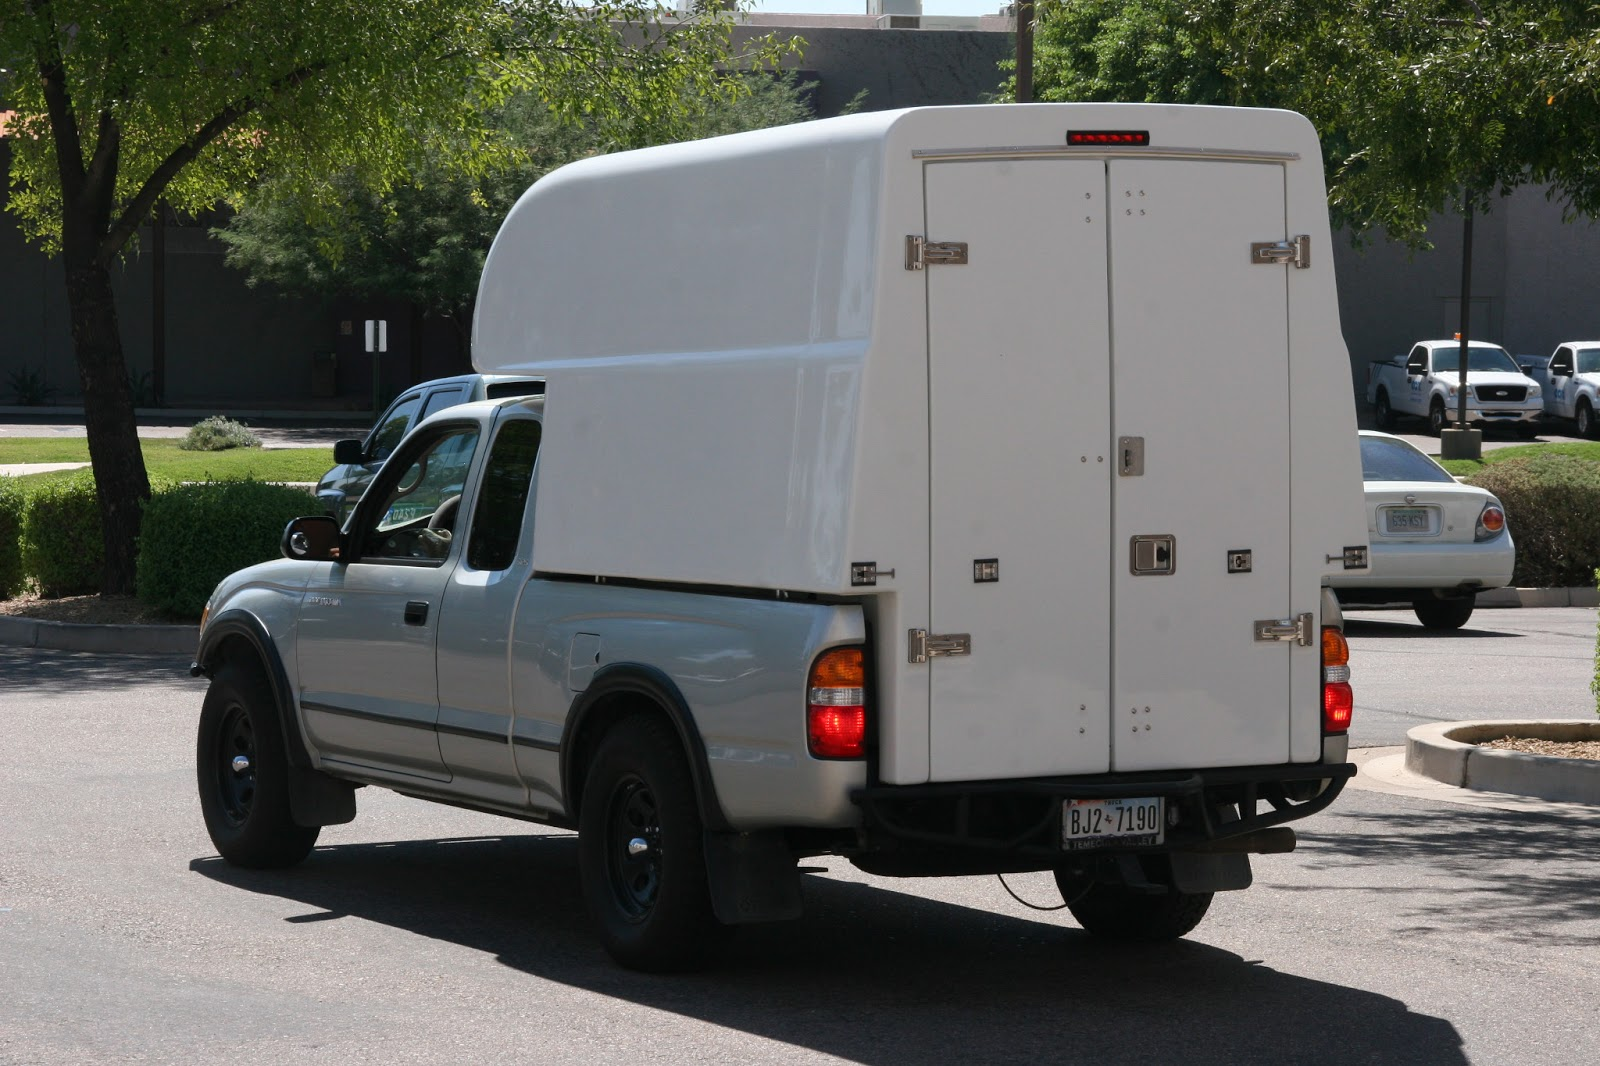 Utility Beds Service Bodies And Tool Boxes For Work